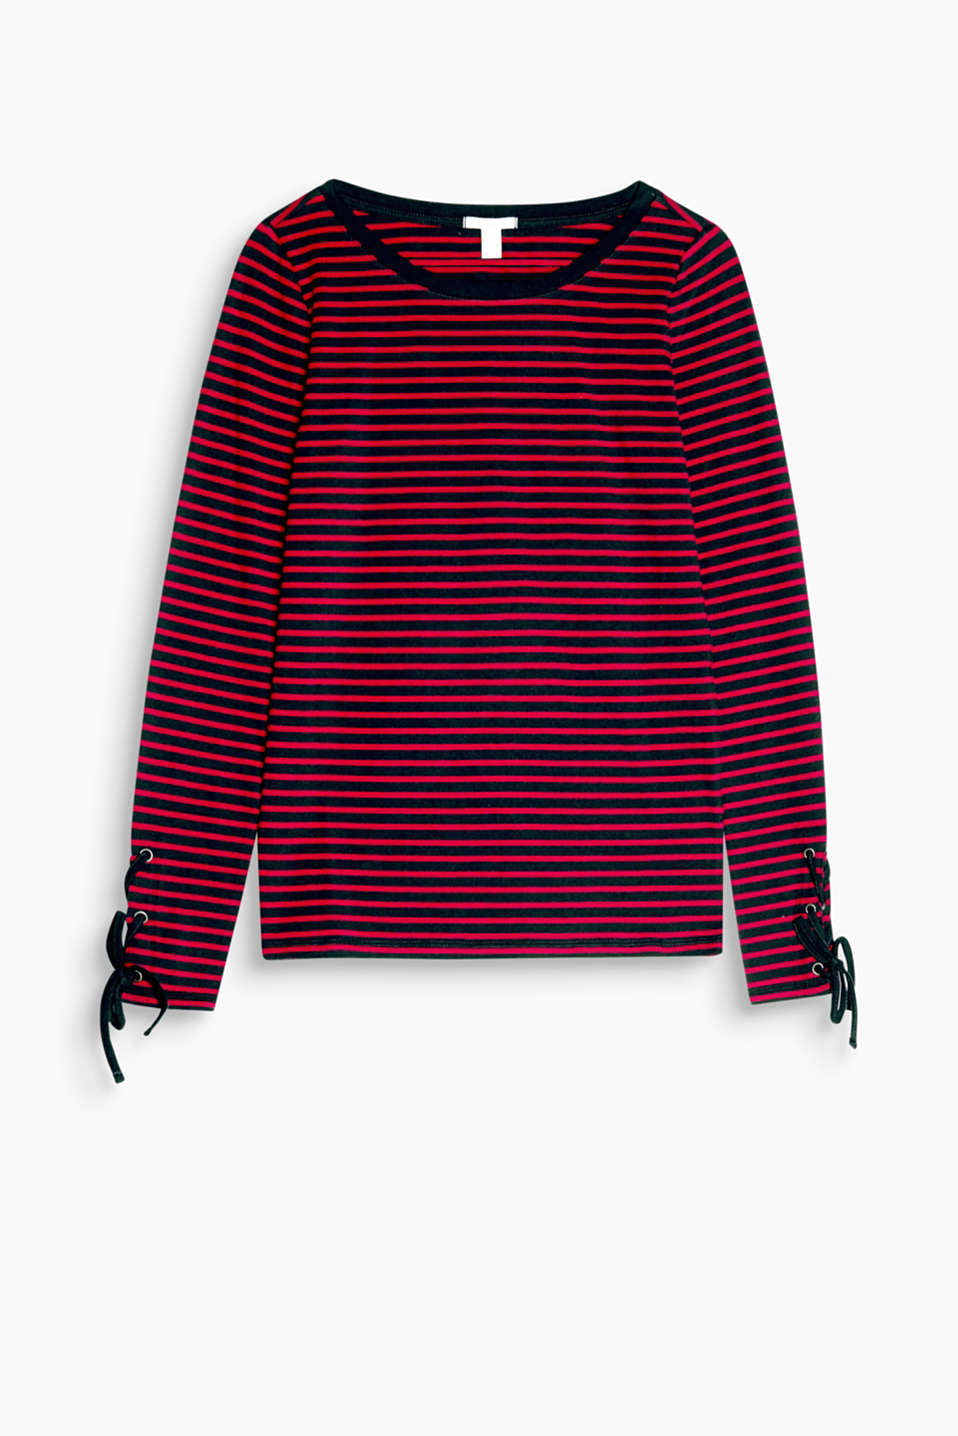 Striped and laced-up: fitted, stretch cotton long sleeve top with a generous neckline